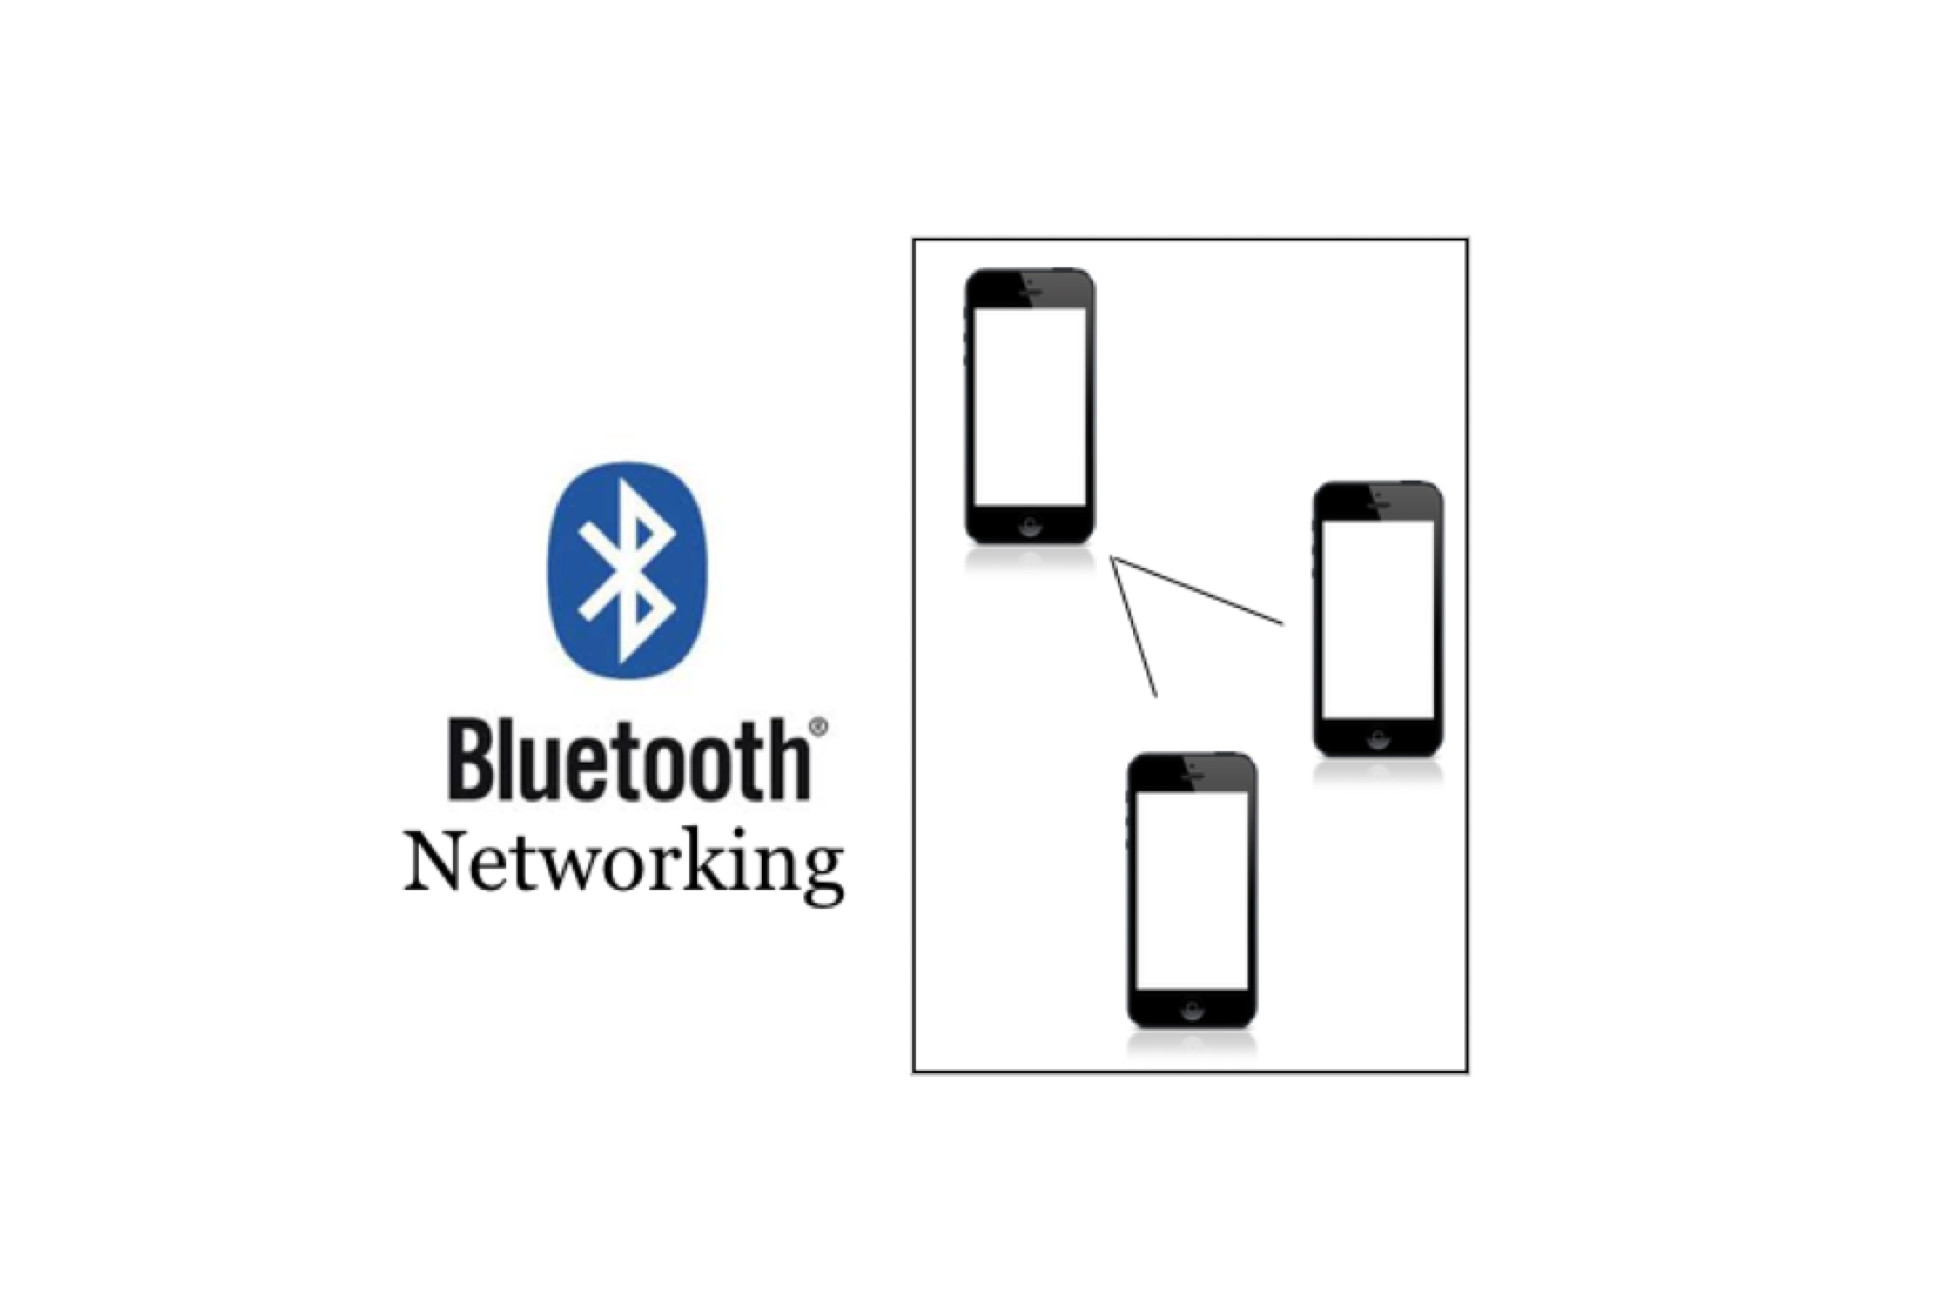 Bluetooth Networking for iOS, tvOS and Android